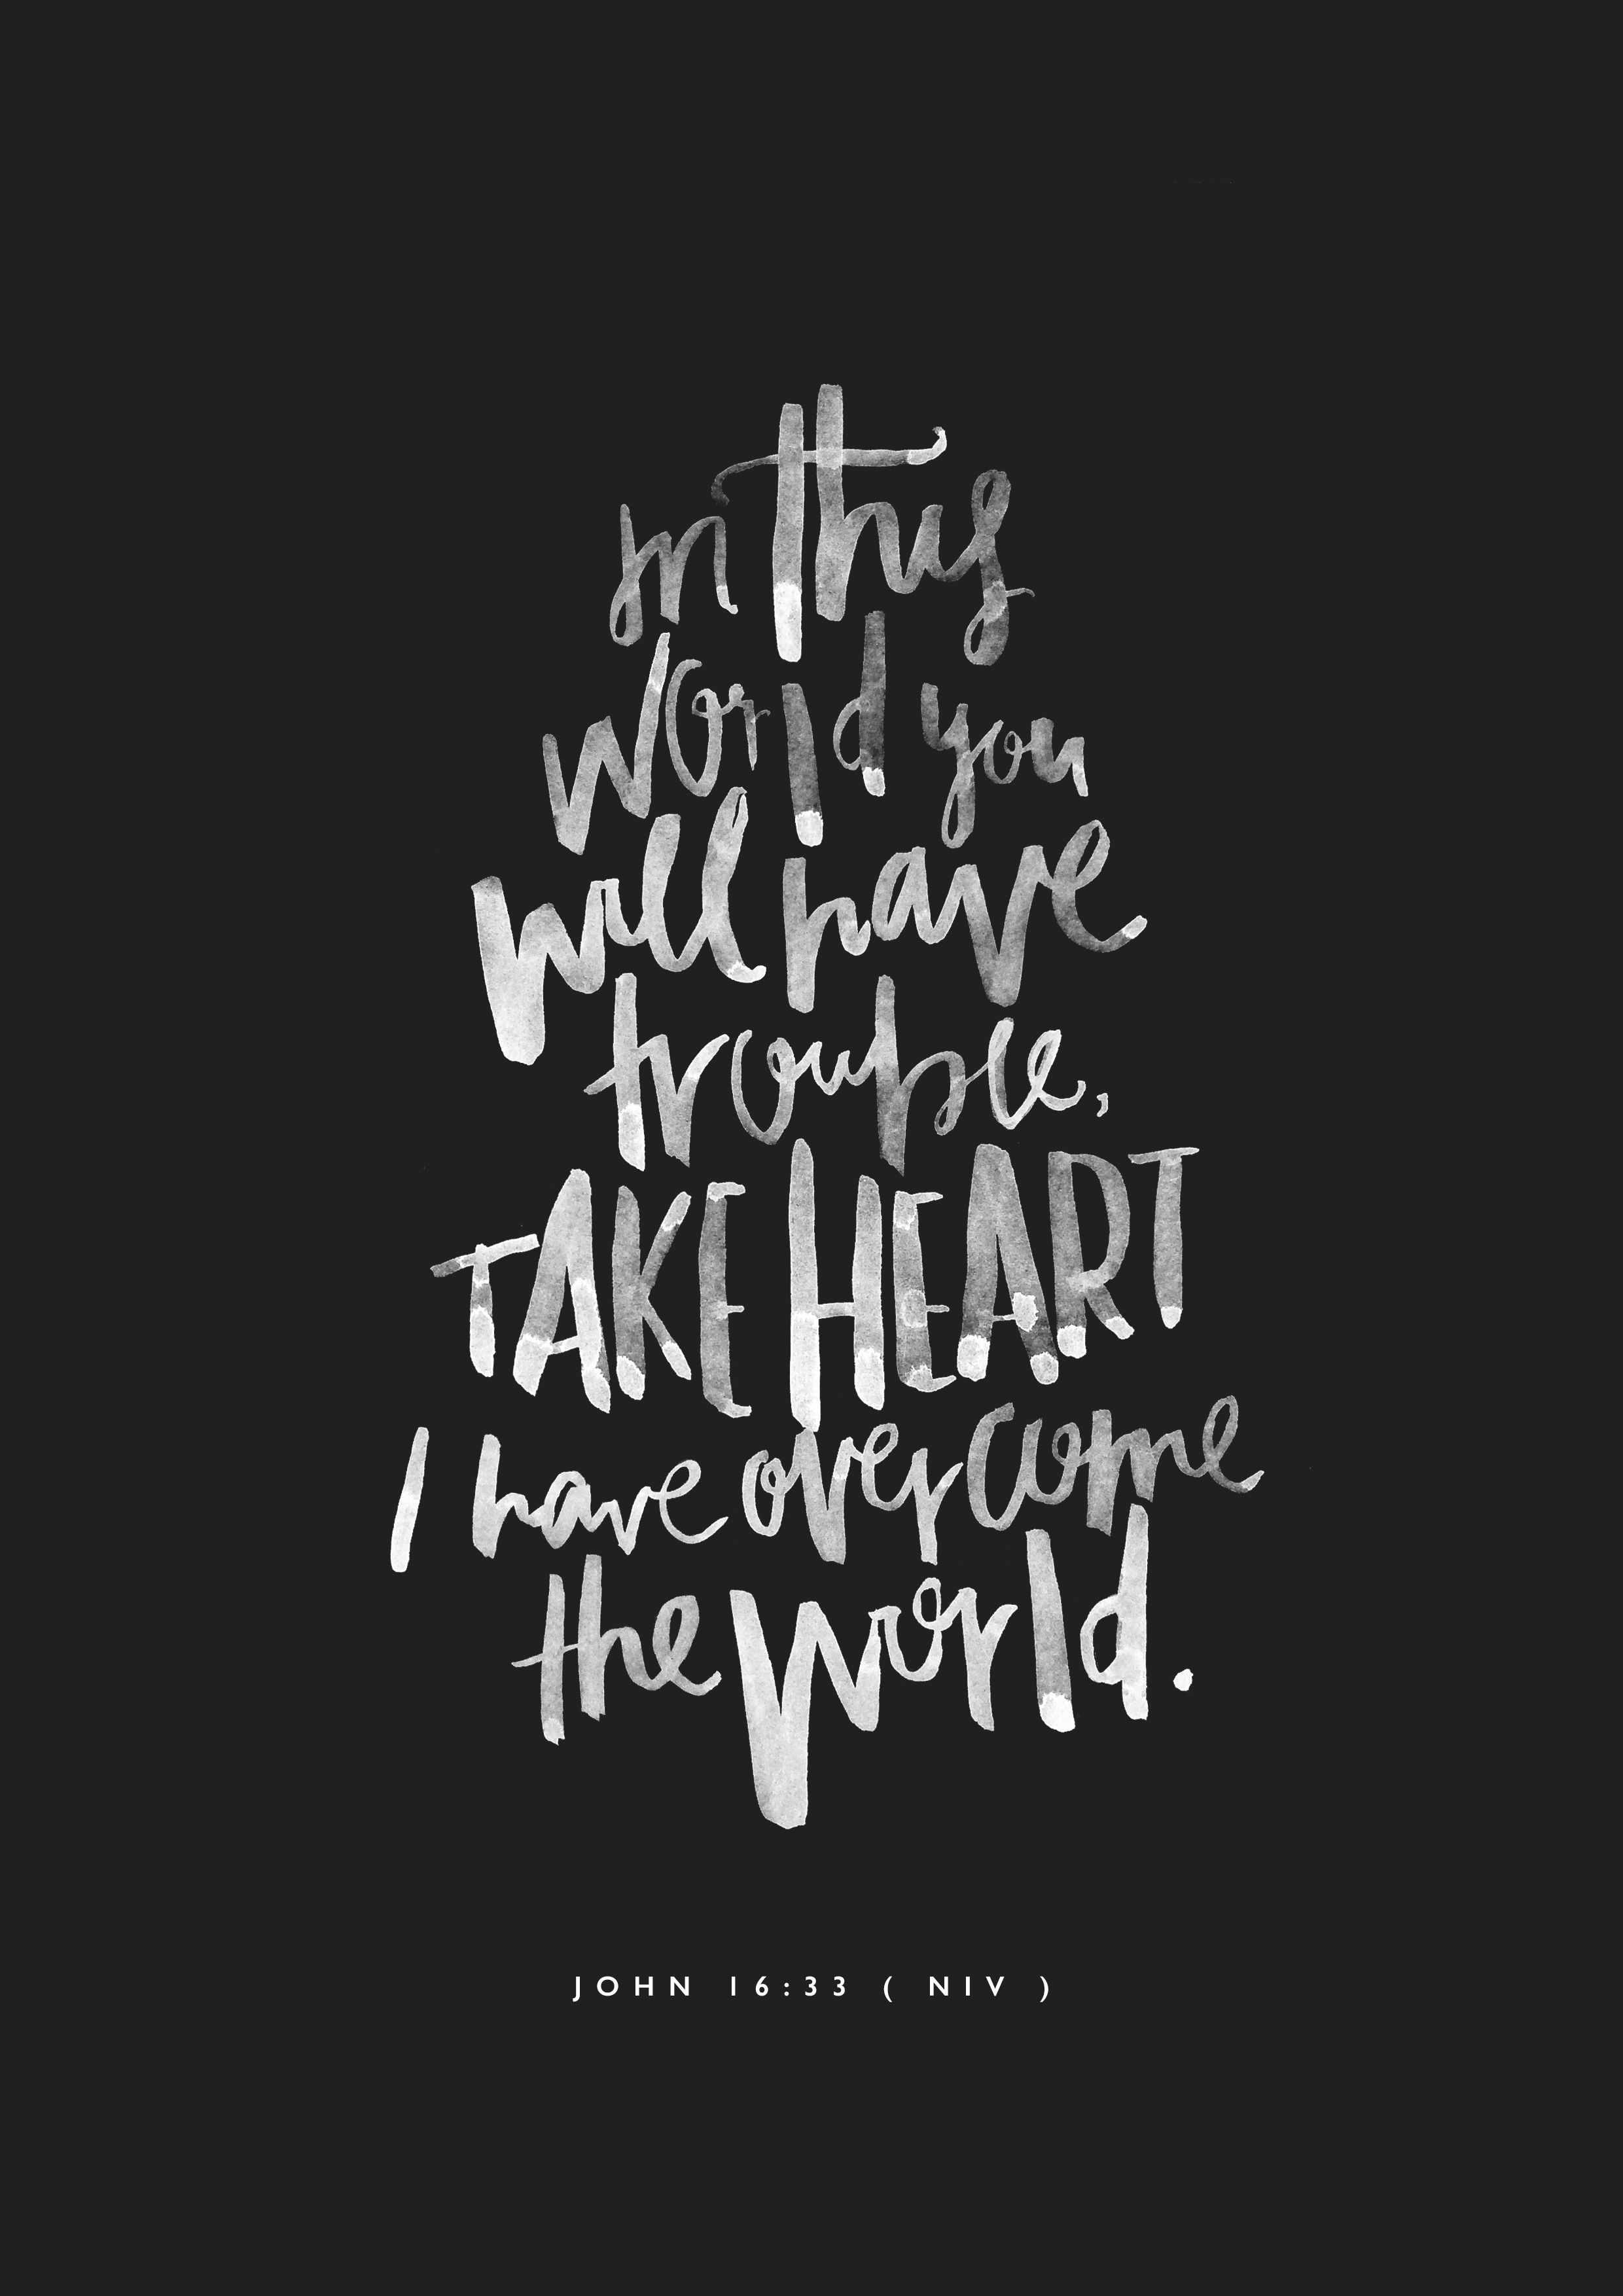 John 16:33 In this world you will have trouble, take heart ...